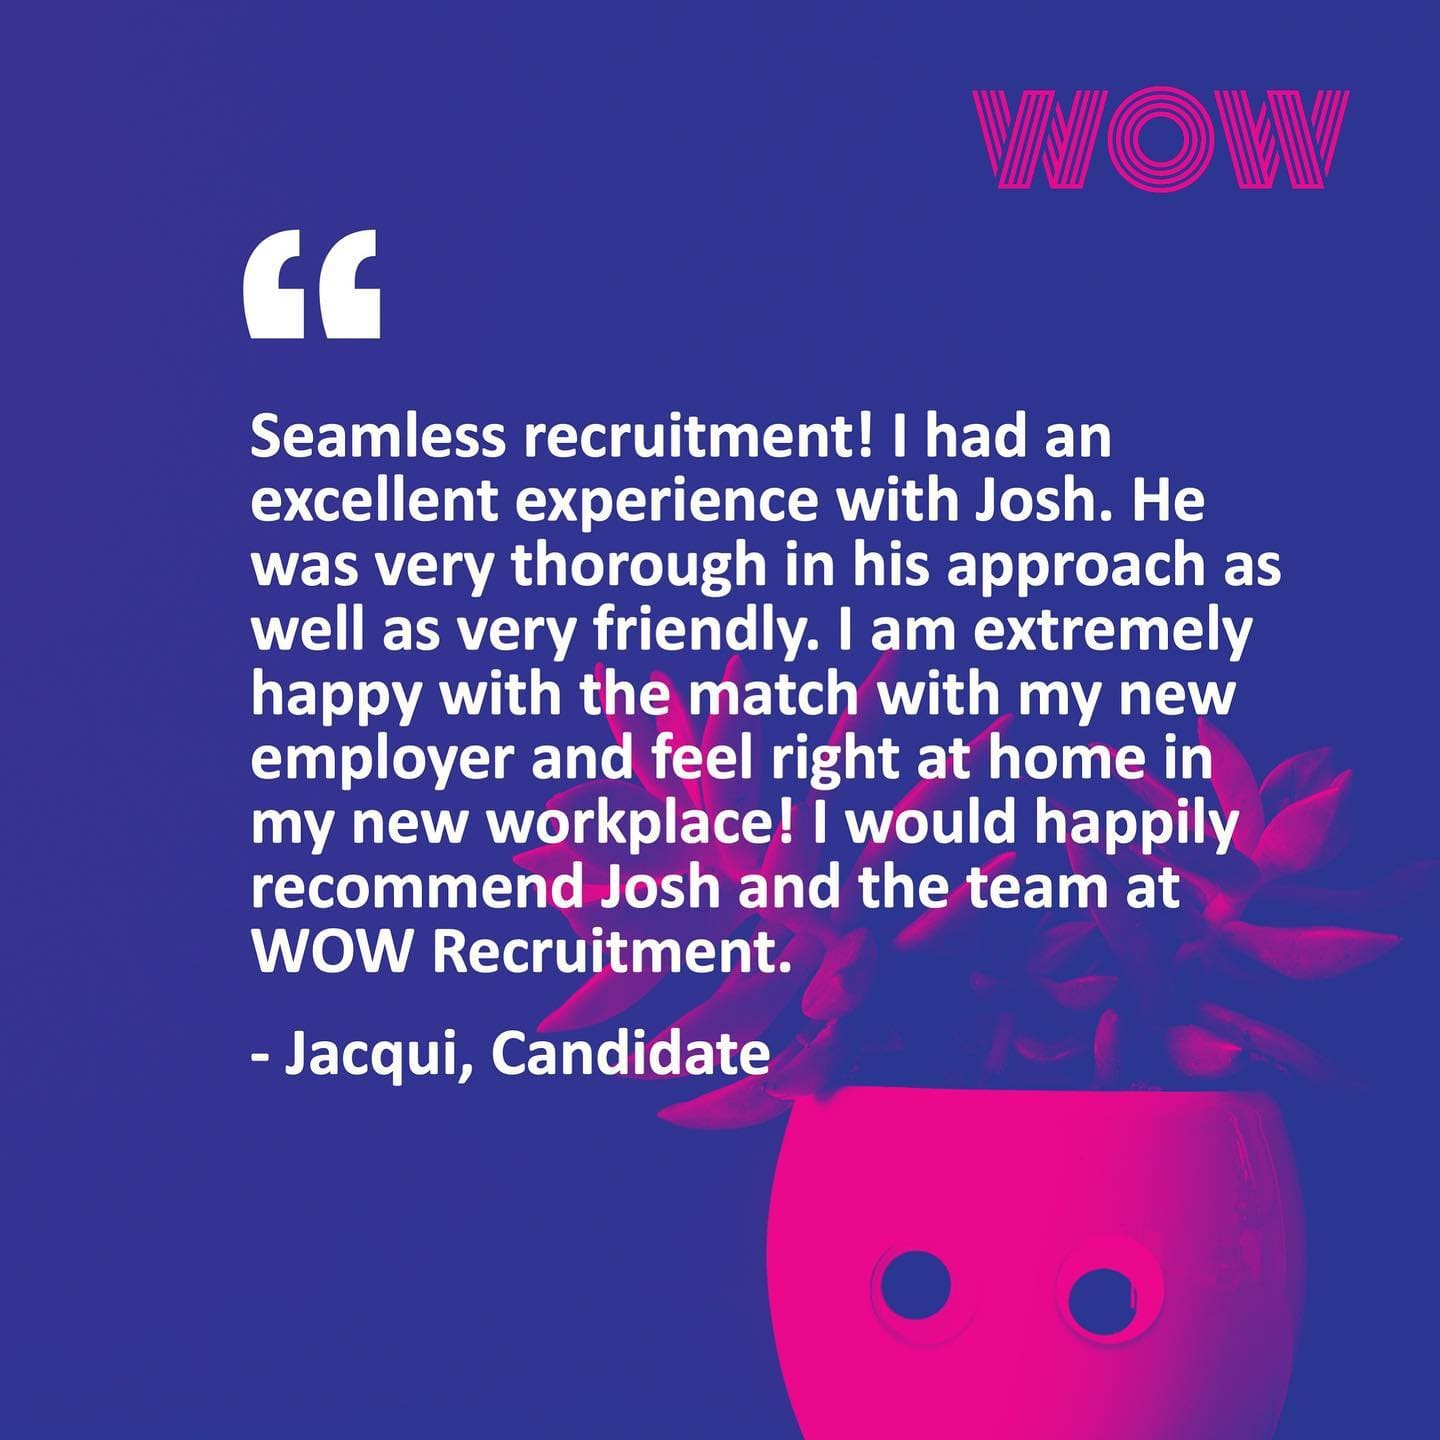 Another happy candidate! Well done Josh 🤩